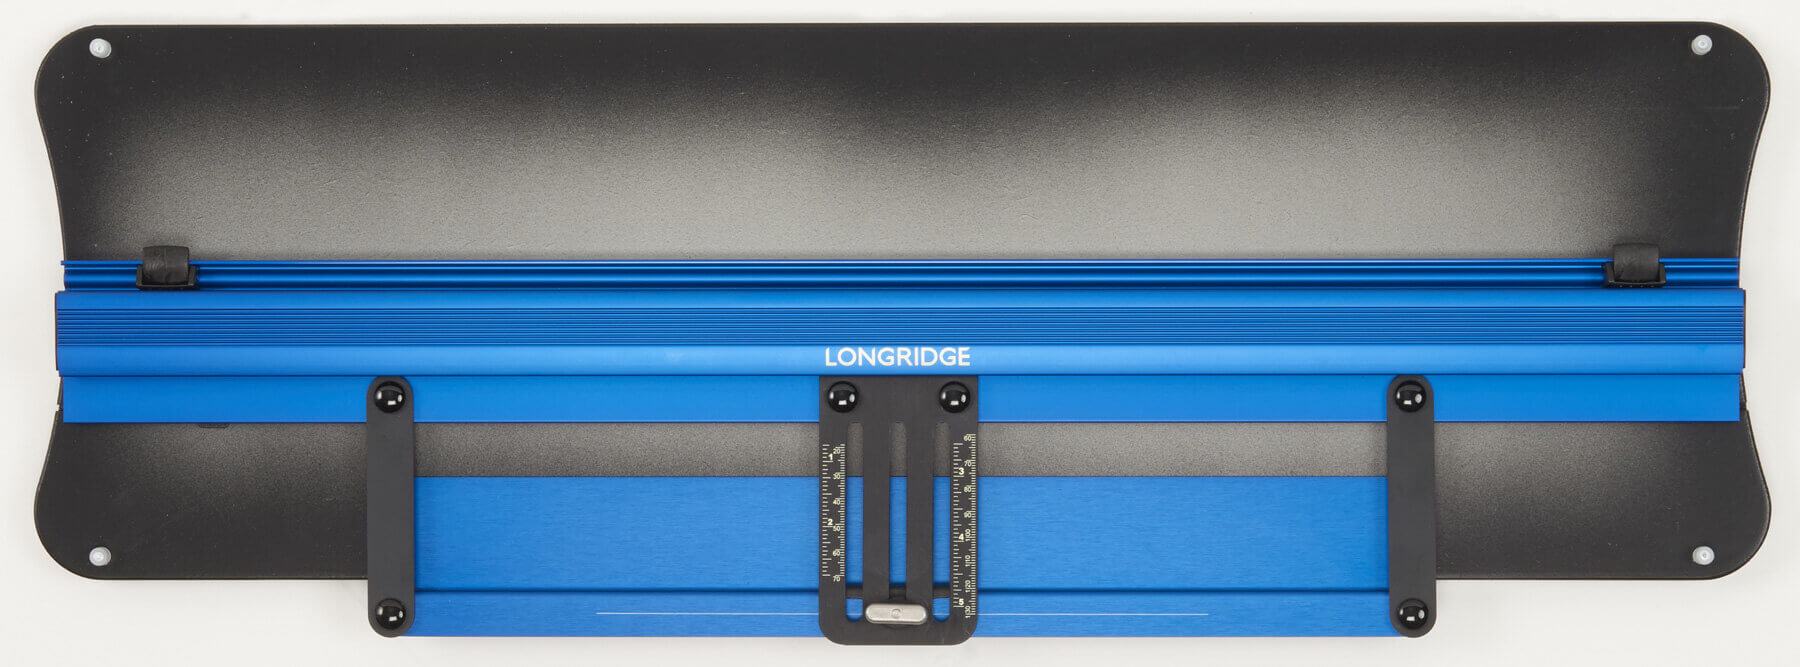 Longridge Signature Midi